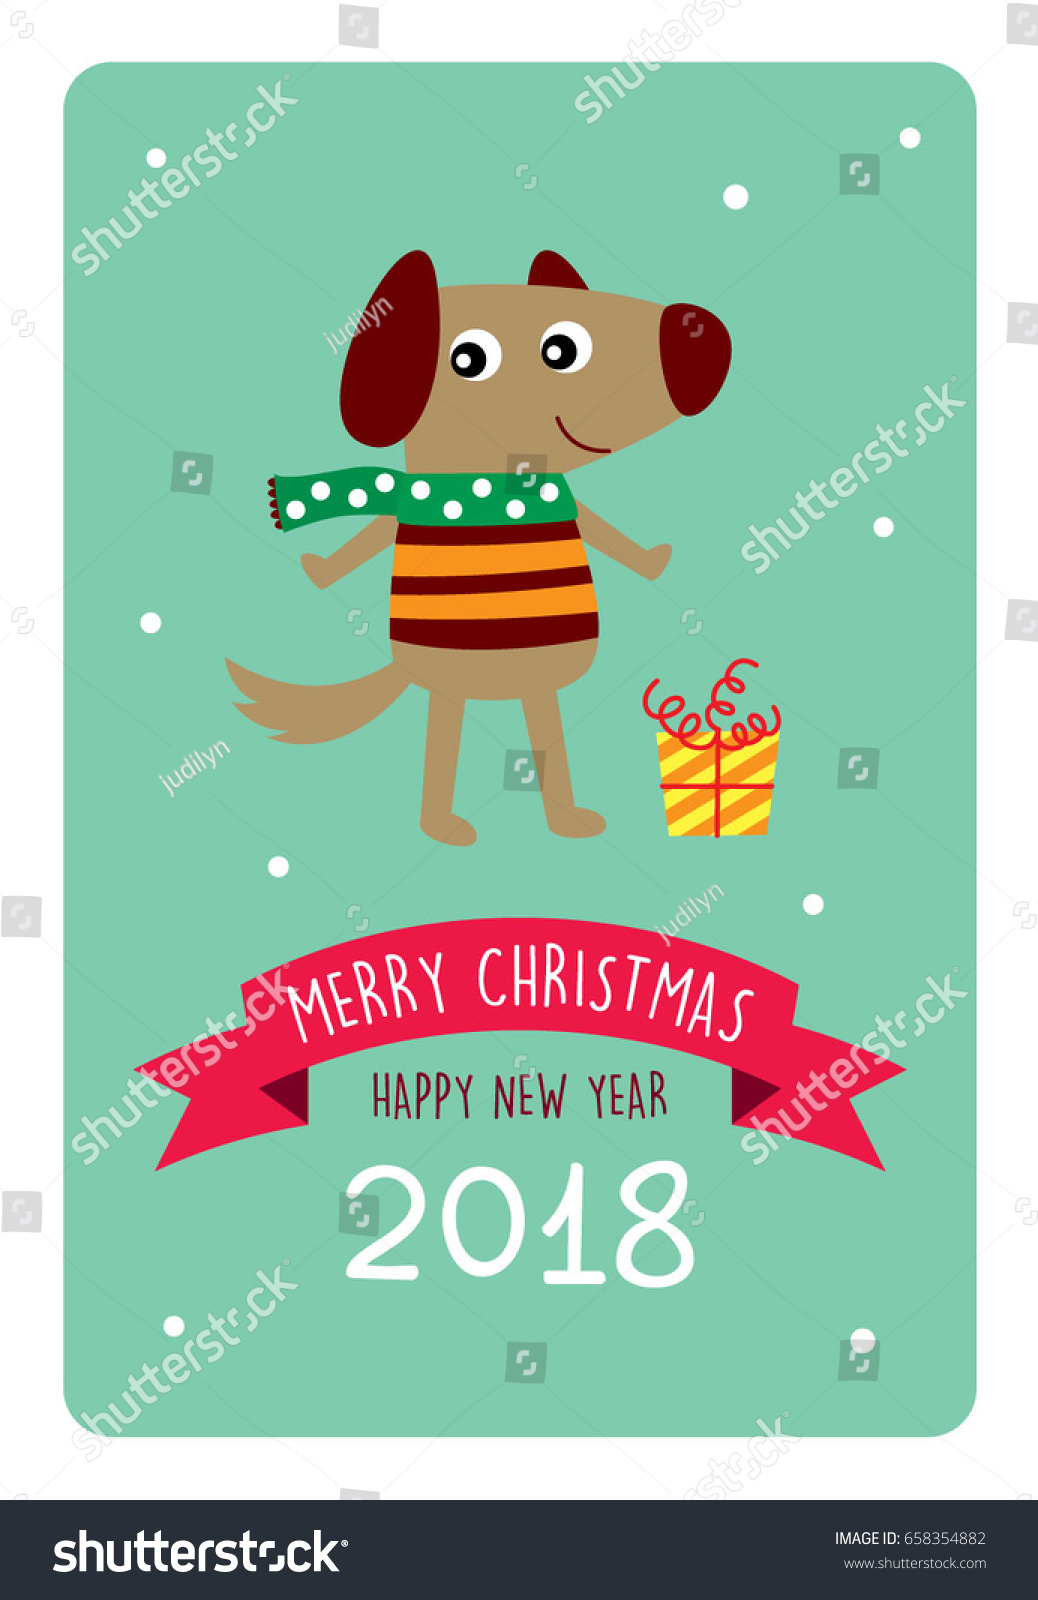 cute puppy dog merry christmas and happy new year 2018 greeting